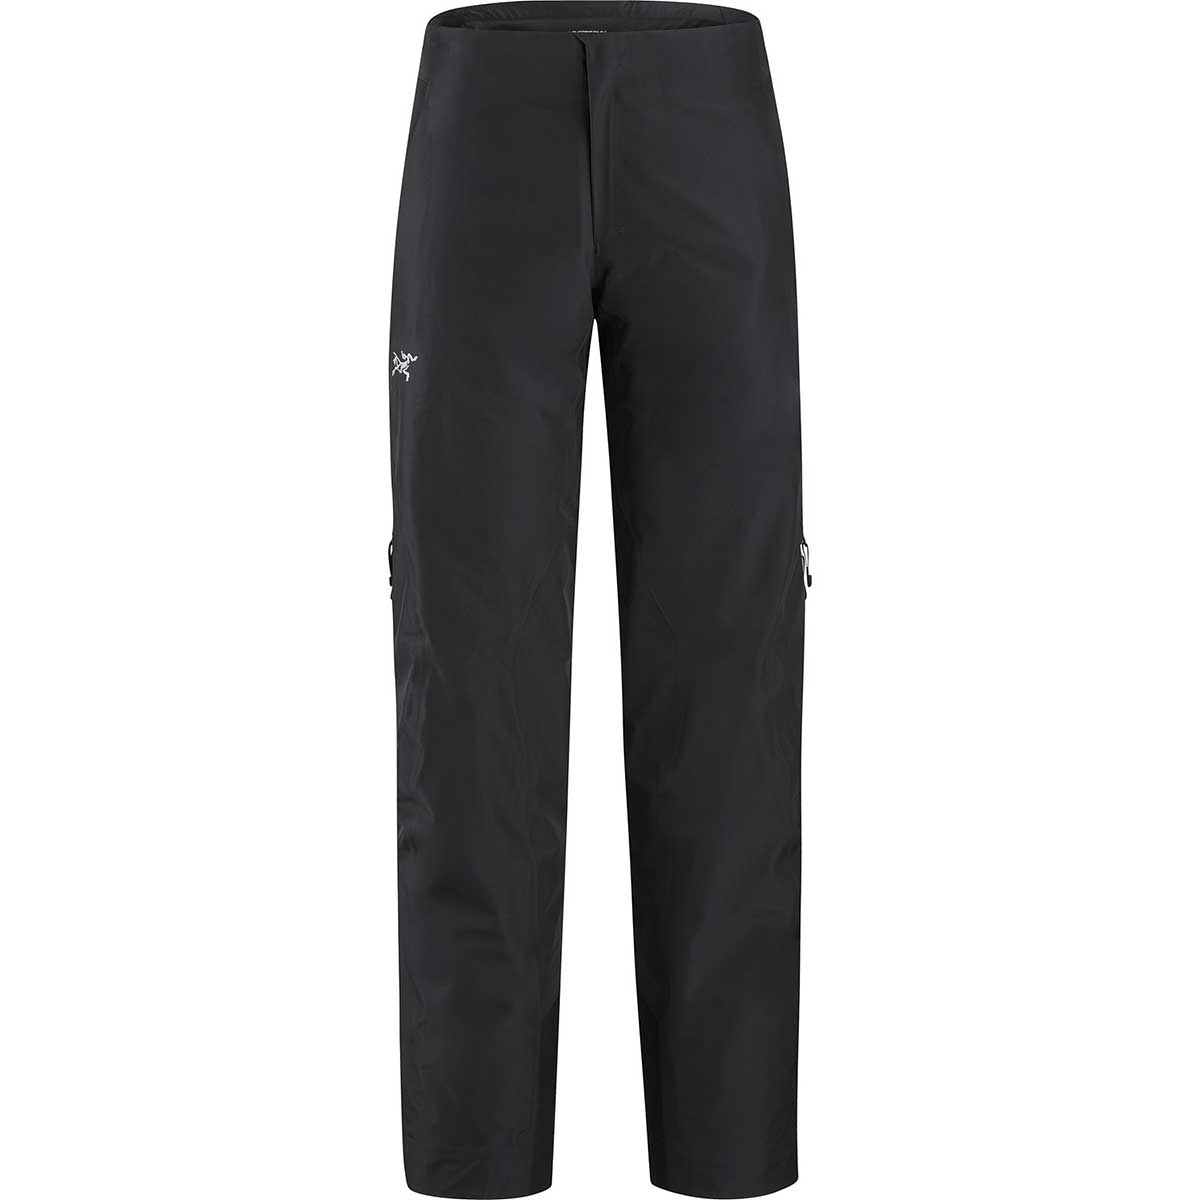 Arcteryx women's Andessa Pant in Black front view